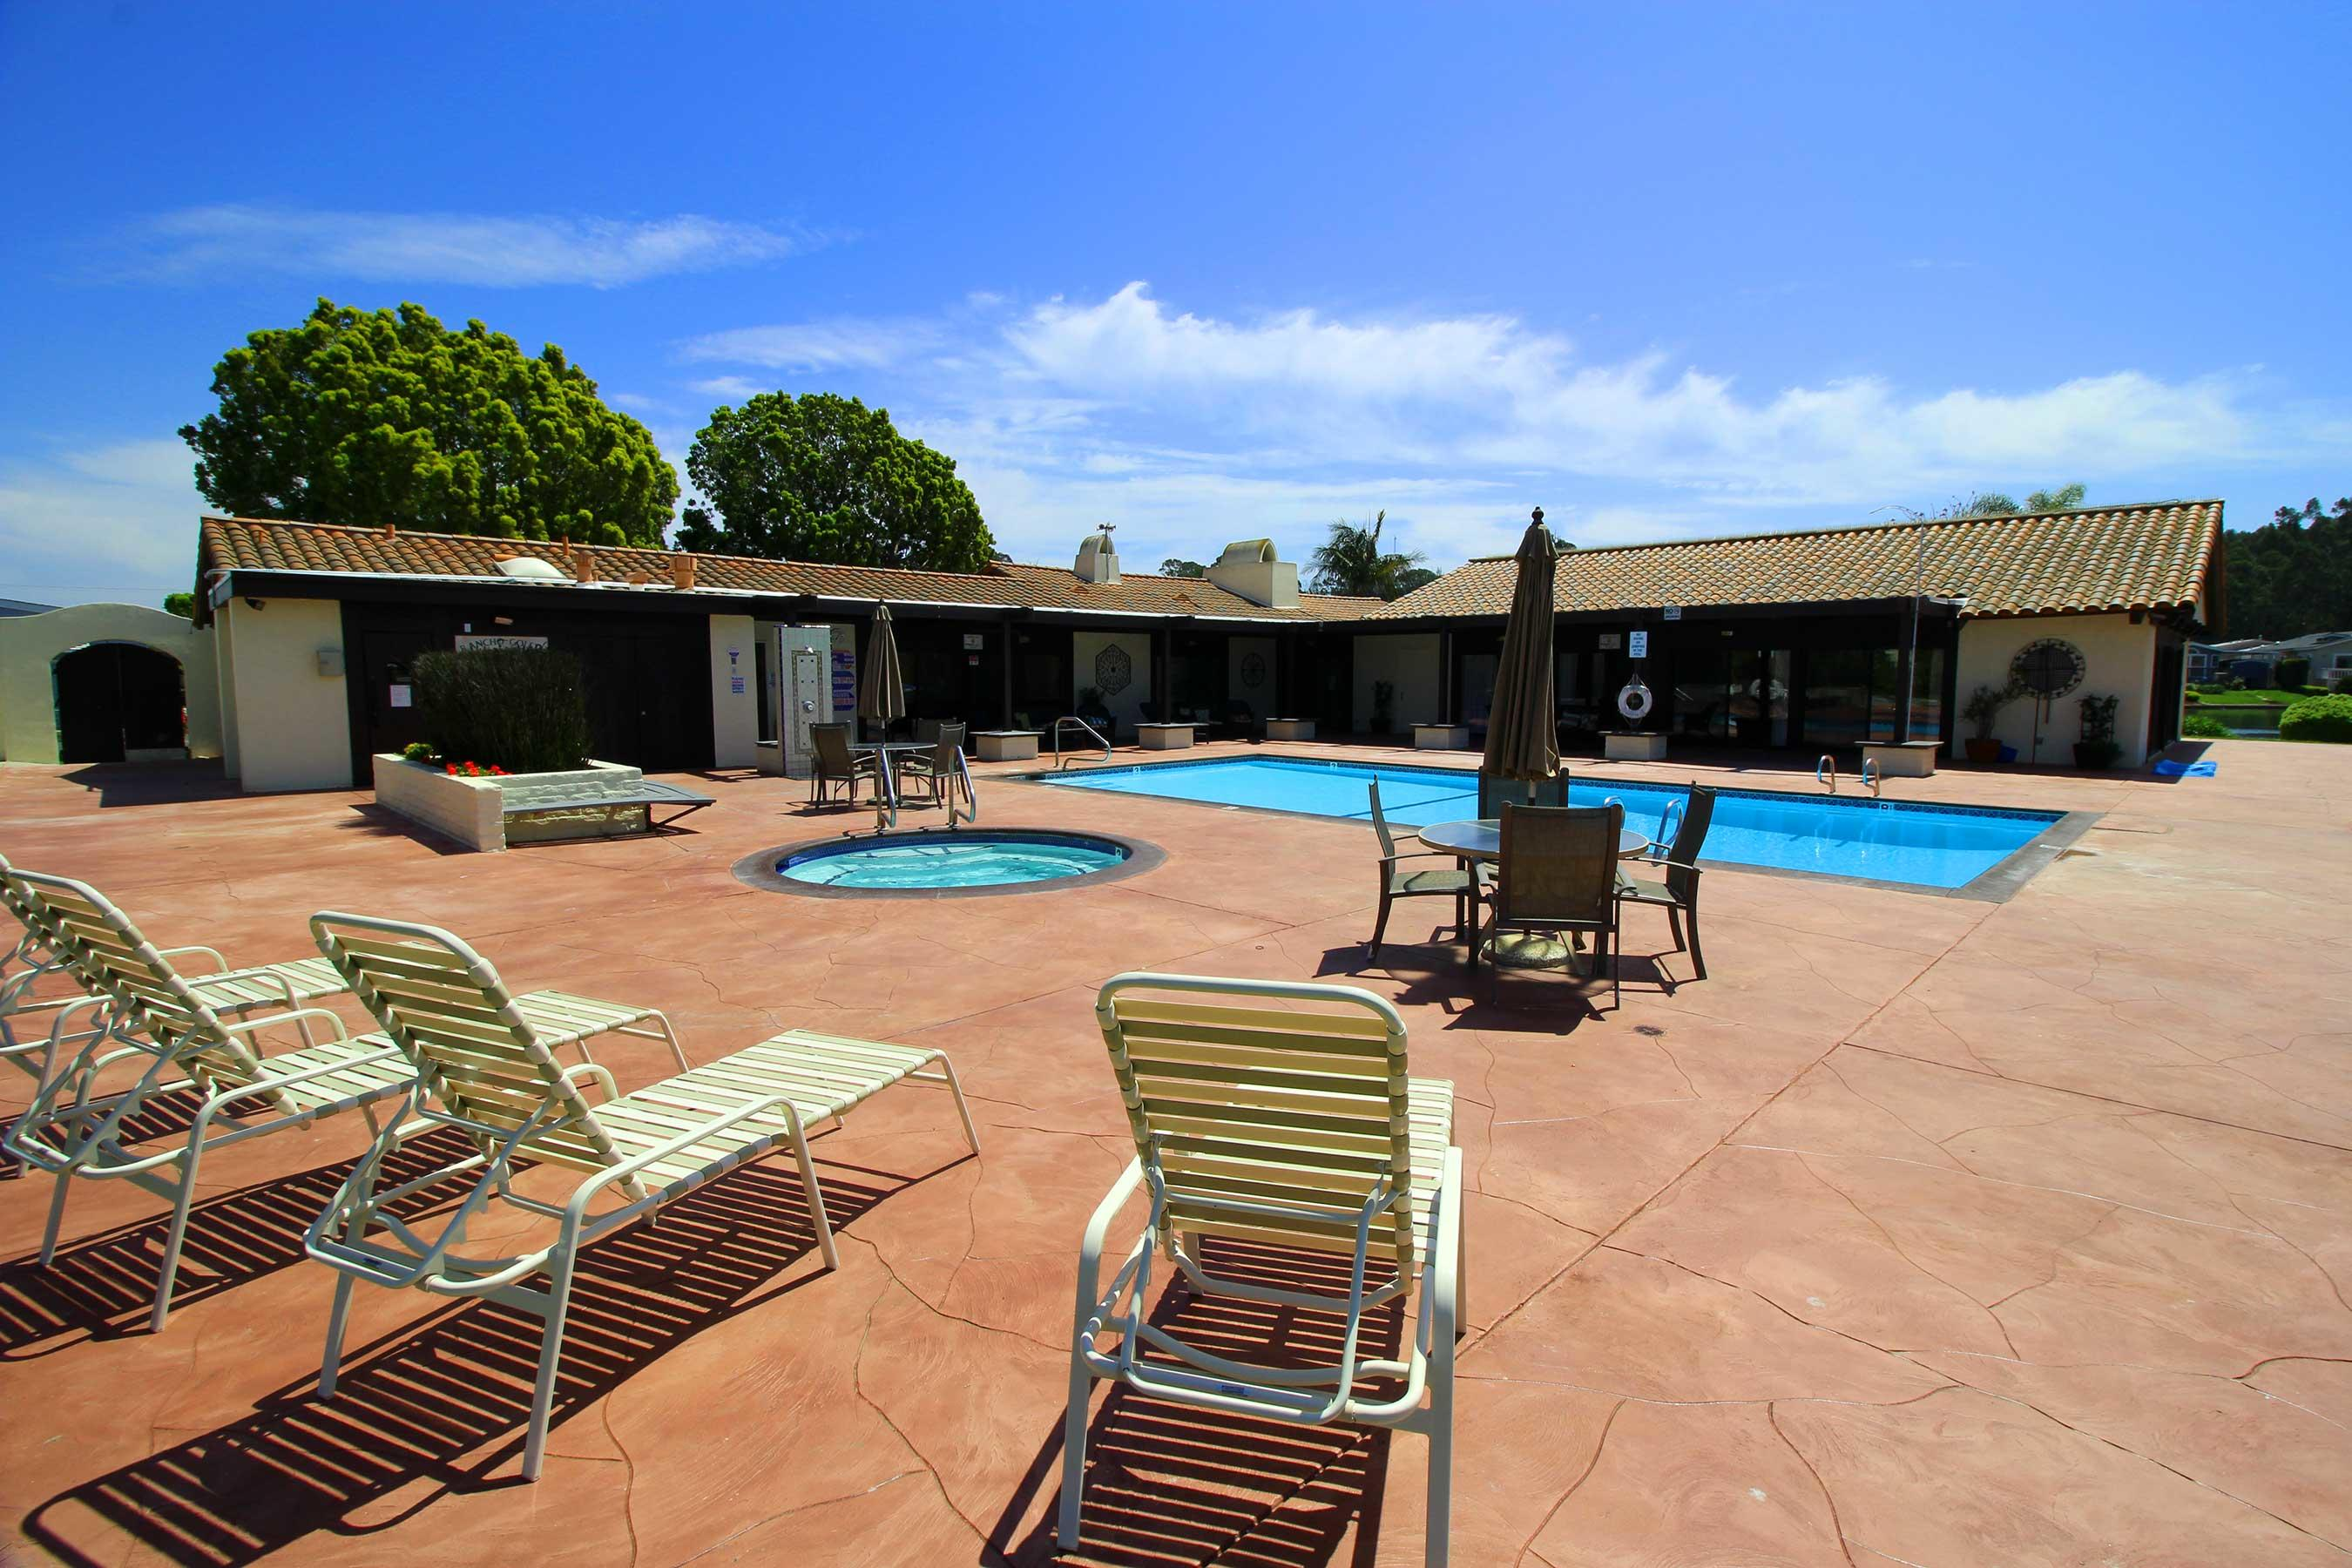 PLEASE SEE VIRTUAL TOUR VIDEO under the PHOTOS tab....  Mobile home in Resident owned Rancho Goleta Community Park; Low space rent/Association fee; New Paint, New Refrigerator, New Washer/Dryer; Mountain views seen from many large windows in the  living room; Bright and clean, this double wide 3 bedroom with 2 baths is in all ages park, It also has a nice size deck on the side to enjoy the morning sunshine. Low maintenance front and backyard has fig and lemon trees and a shed. Newer walk-in heated bathtub/spa in master bathroom. Close to Bike path, UCSB, Goleta Beach, Shopping, Restaurants, Hospital and many more. Park amenities include: Pool; Spa; Clubhouse; Gym; Lake; RV storage; and Greenbelt.